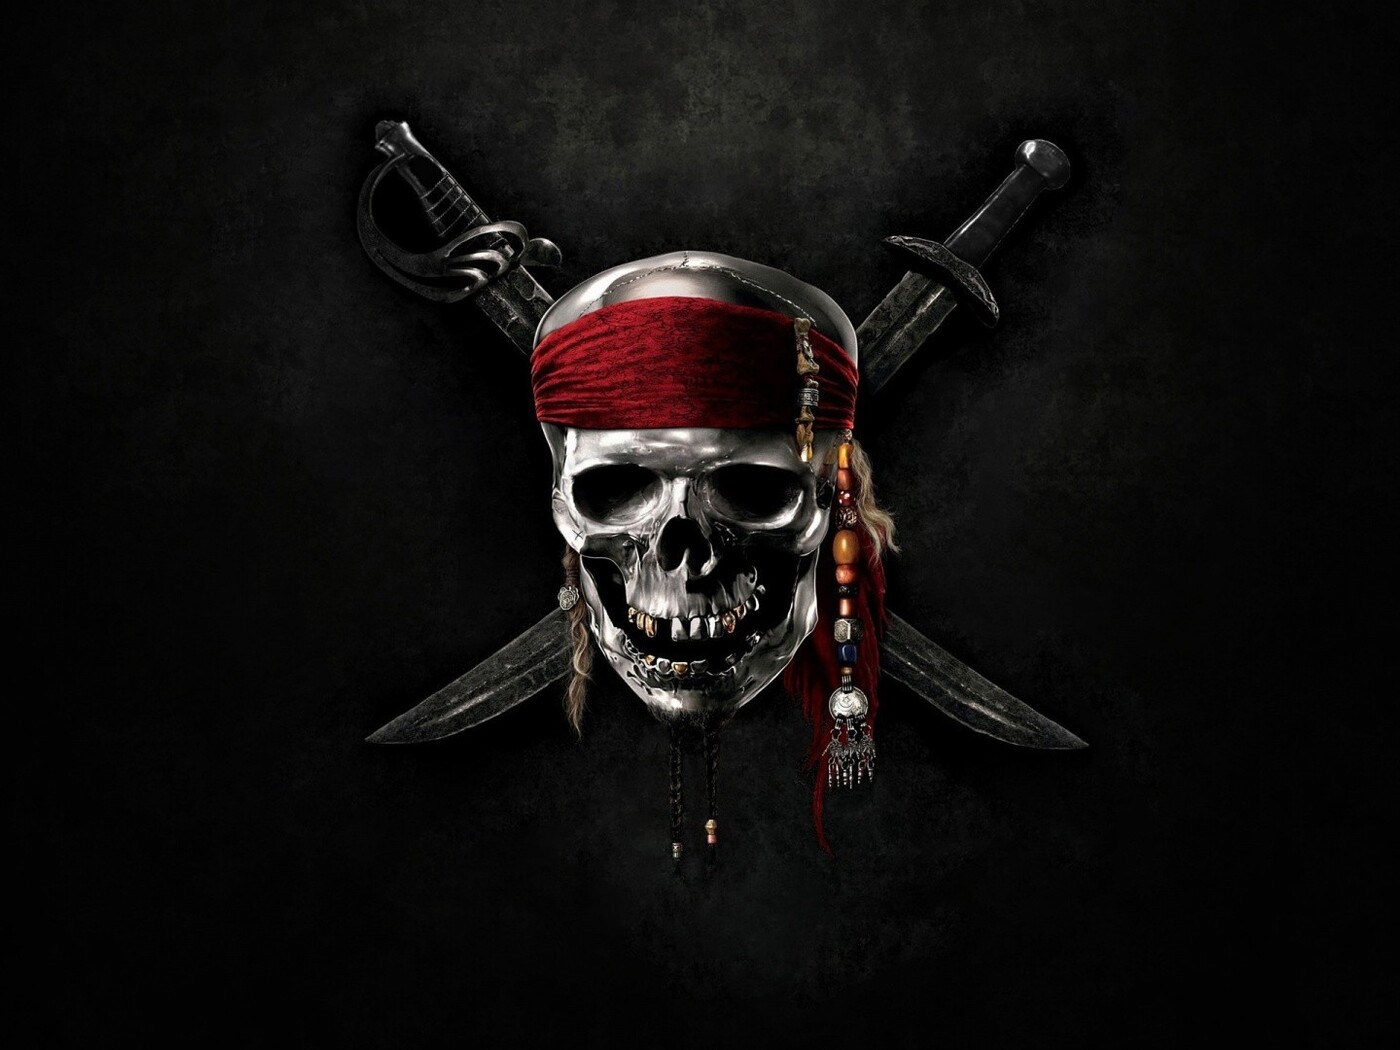 pirates-of-the-caribbean-skull.jpg